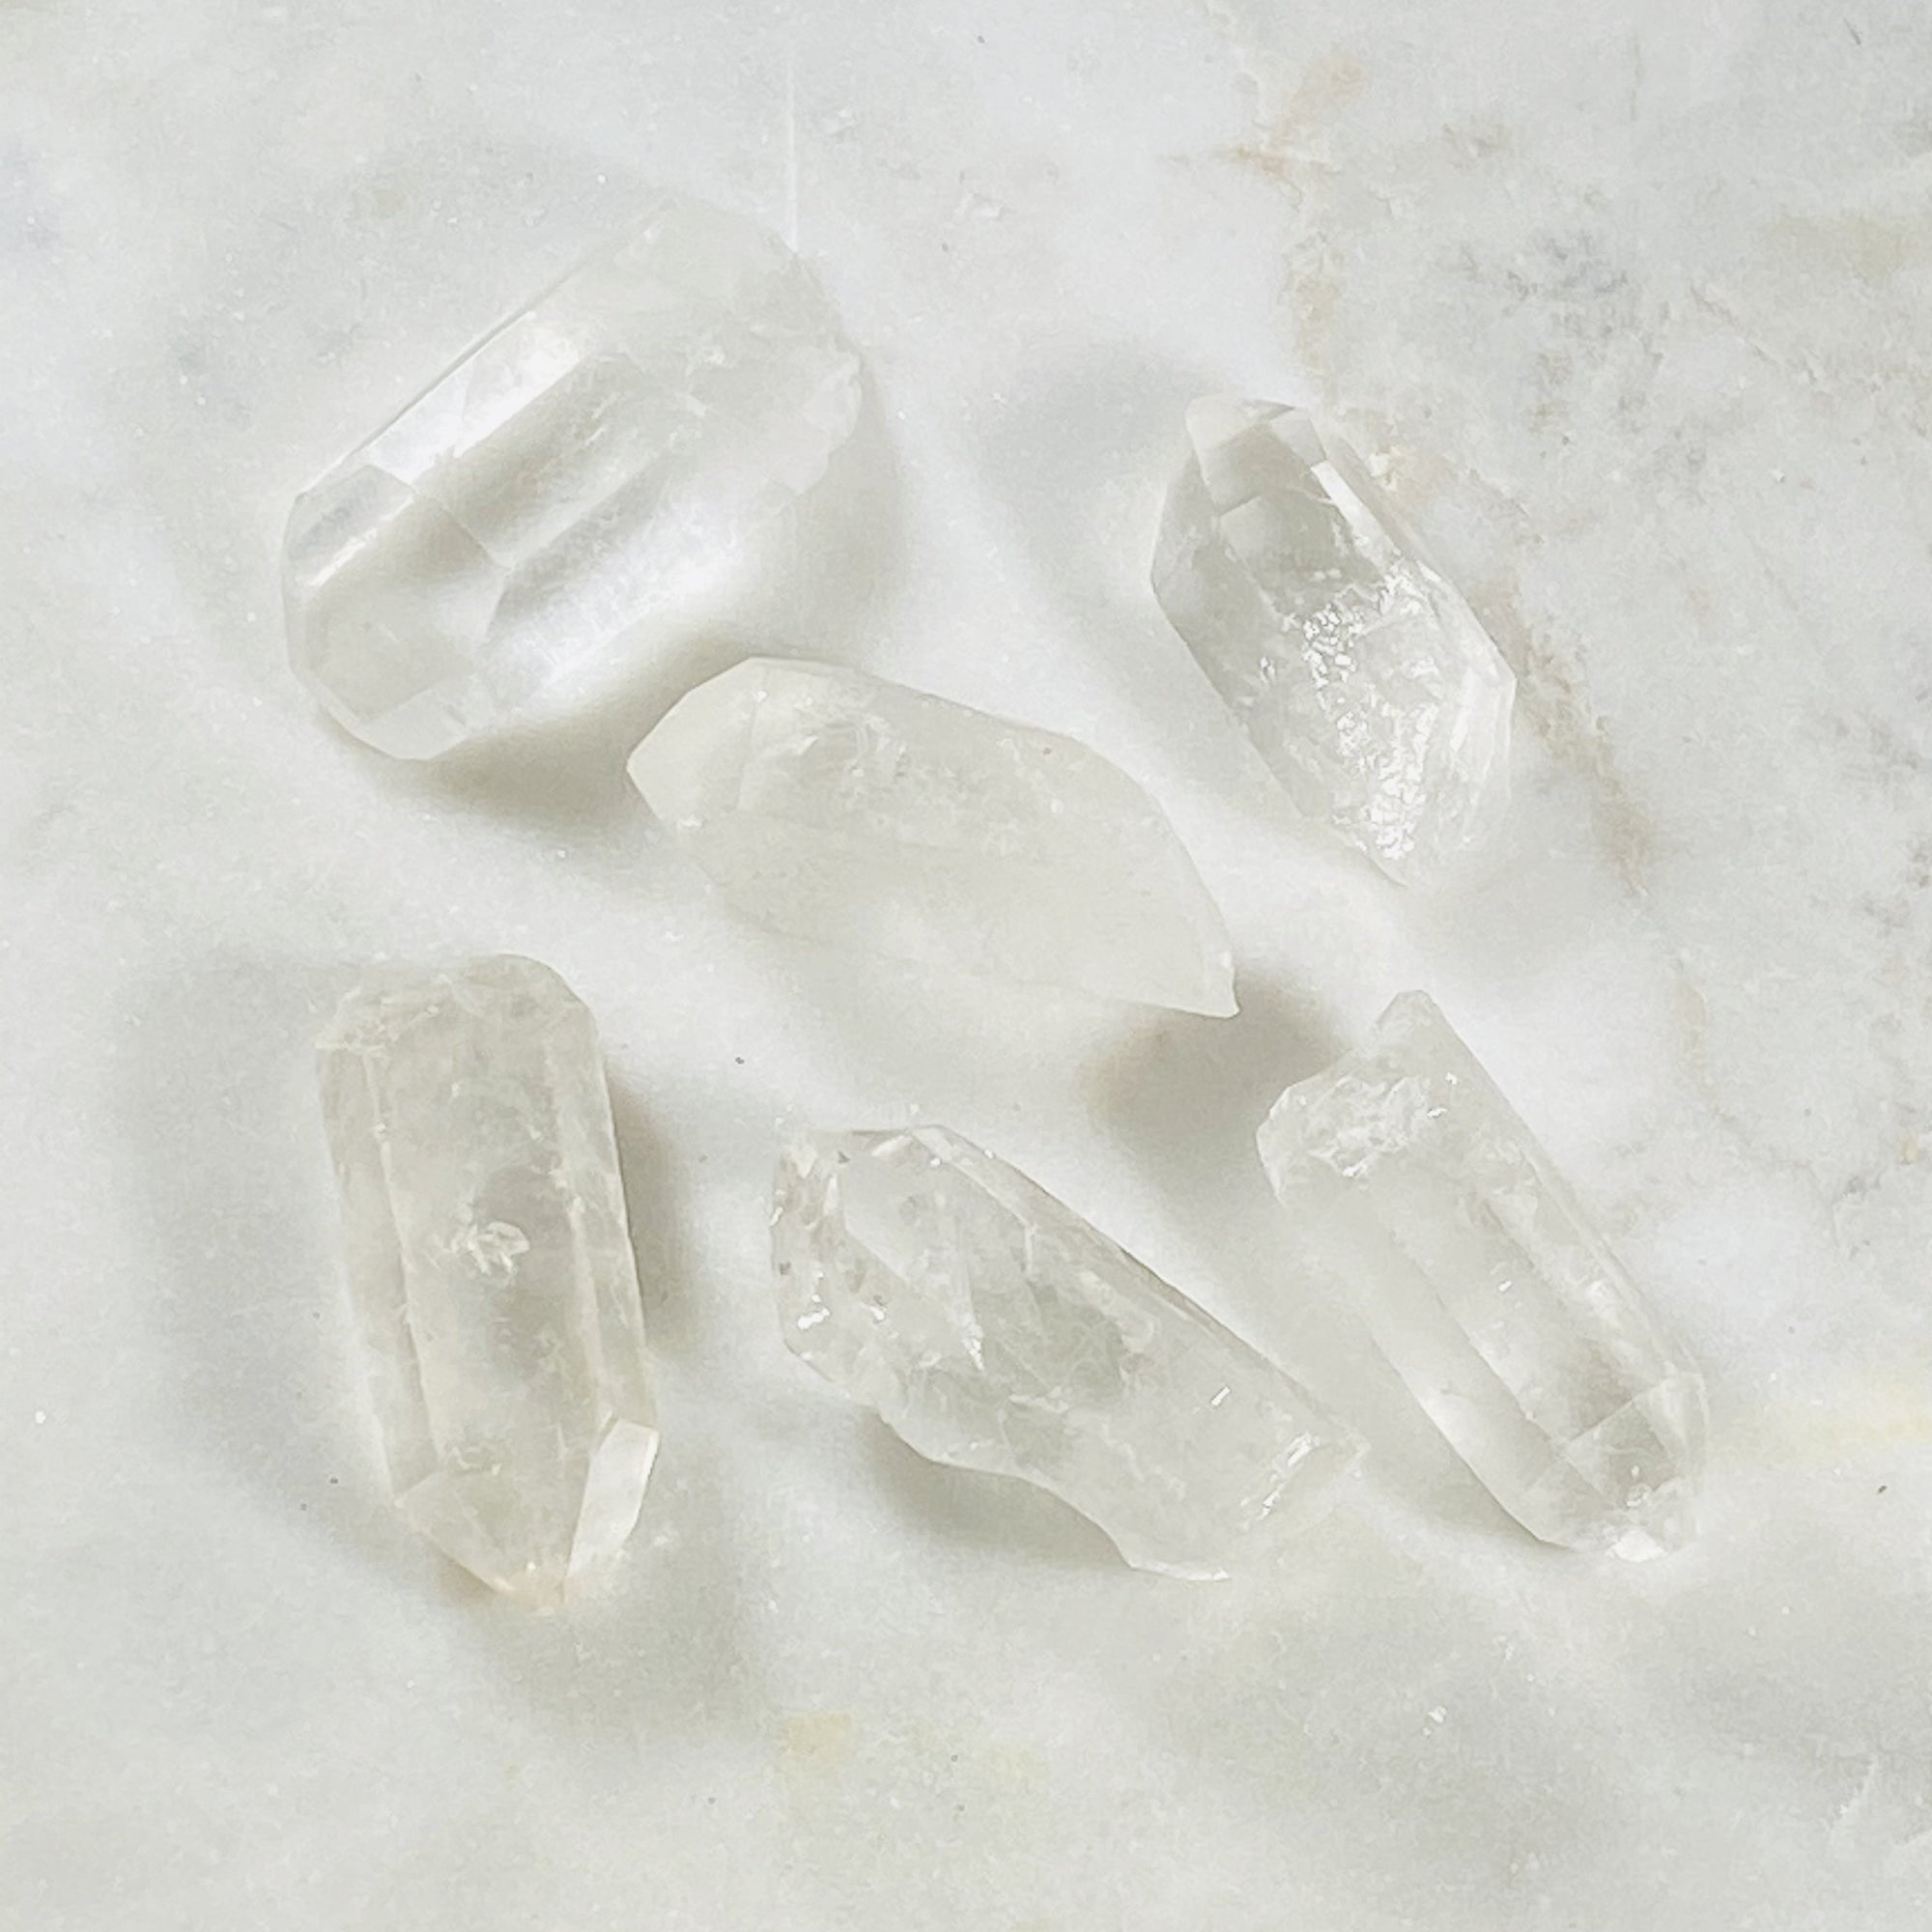 Quartz Crystal Point Healing Crystals for Raising Vibrations